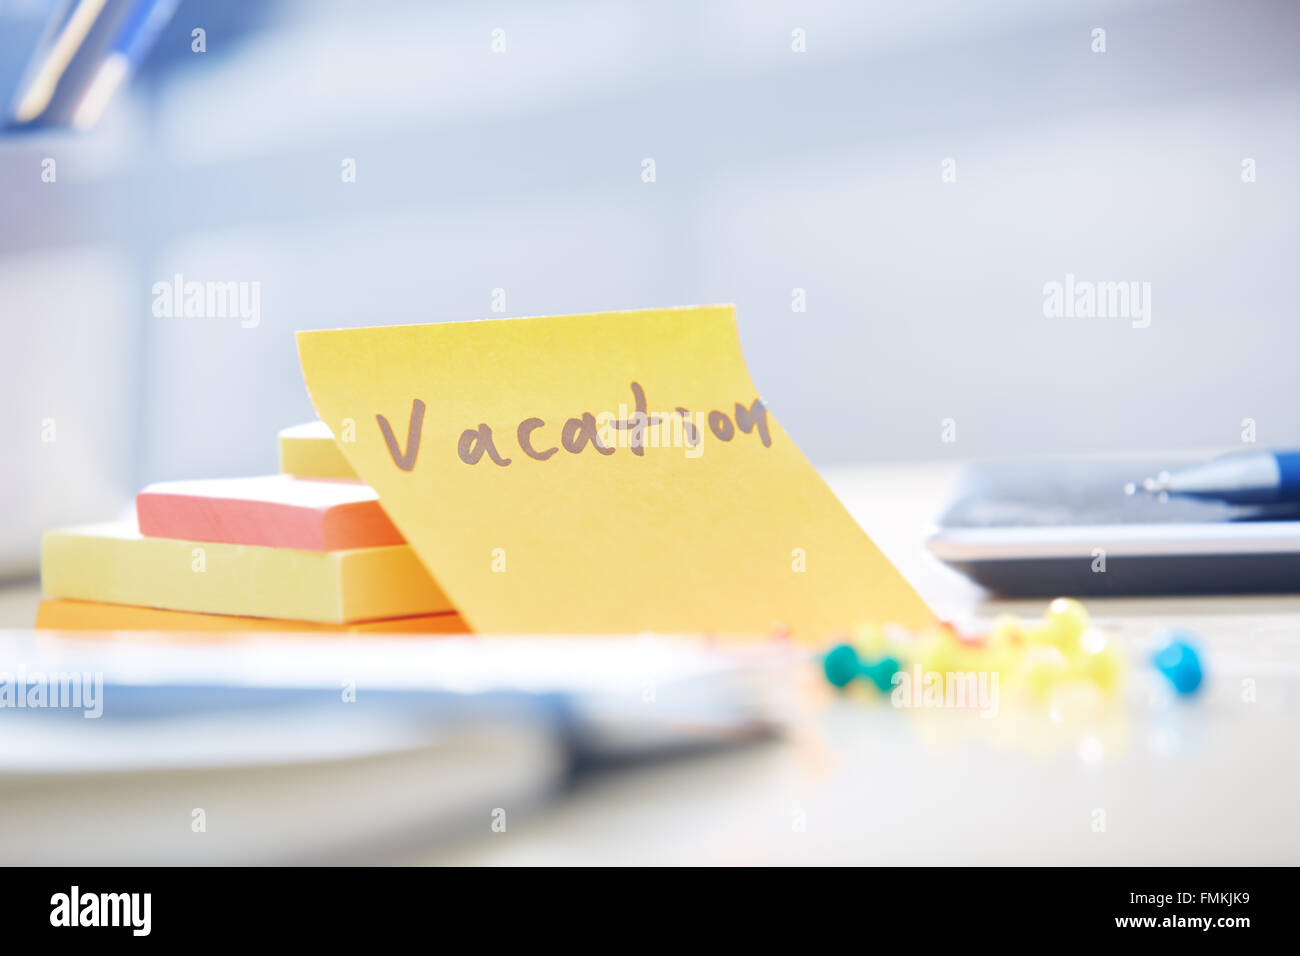 Vacation text on adhesive note at office - Stock Image